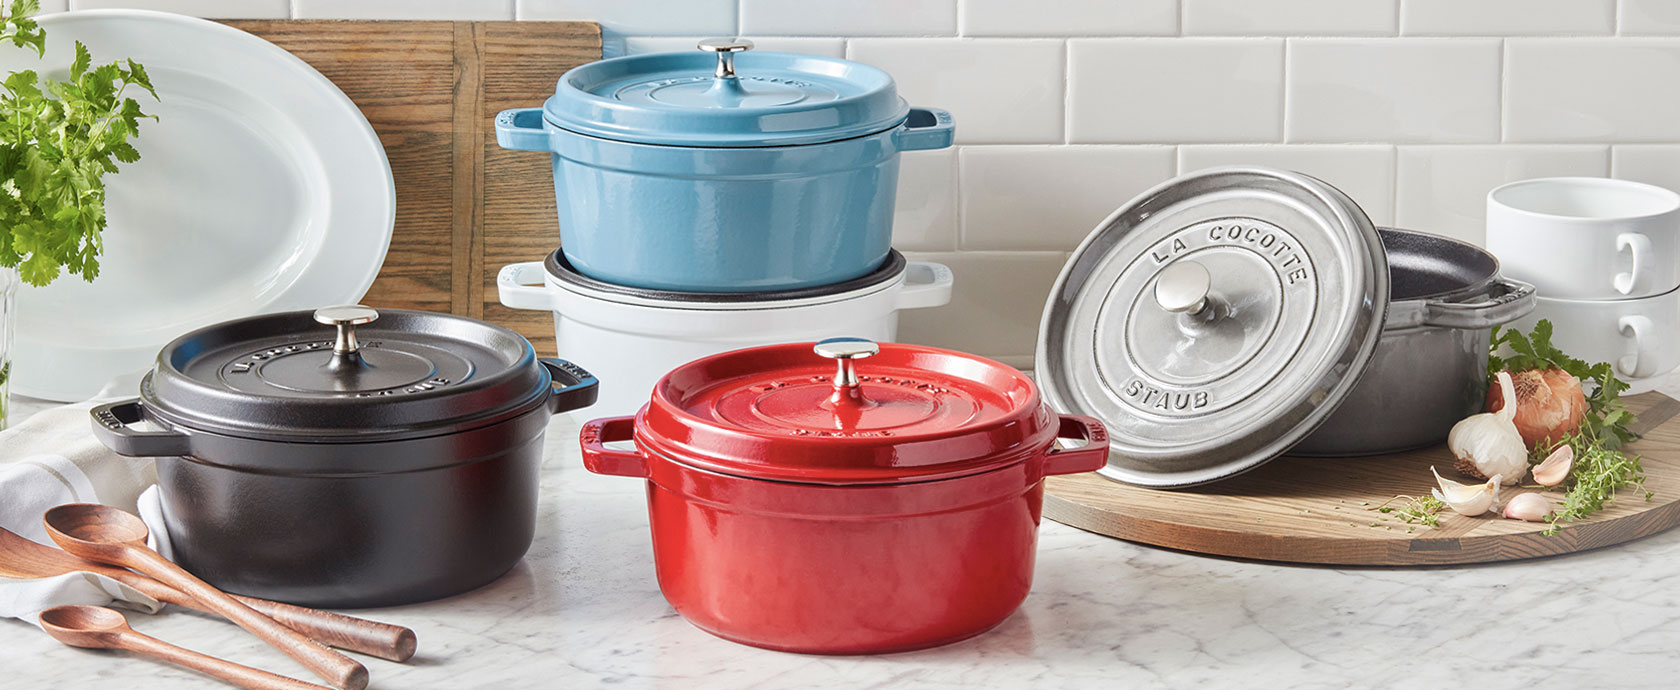 Staub cocottes in various colors